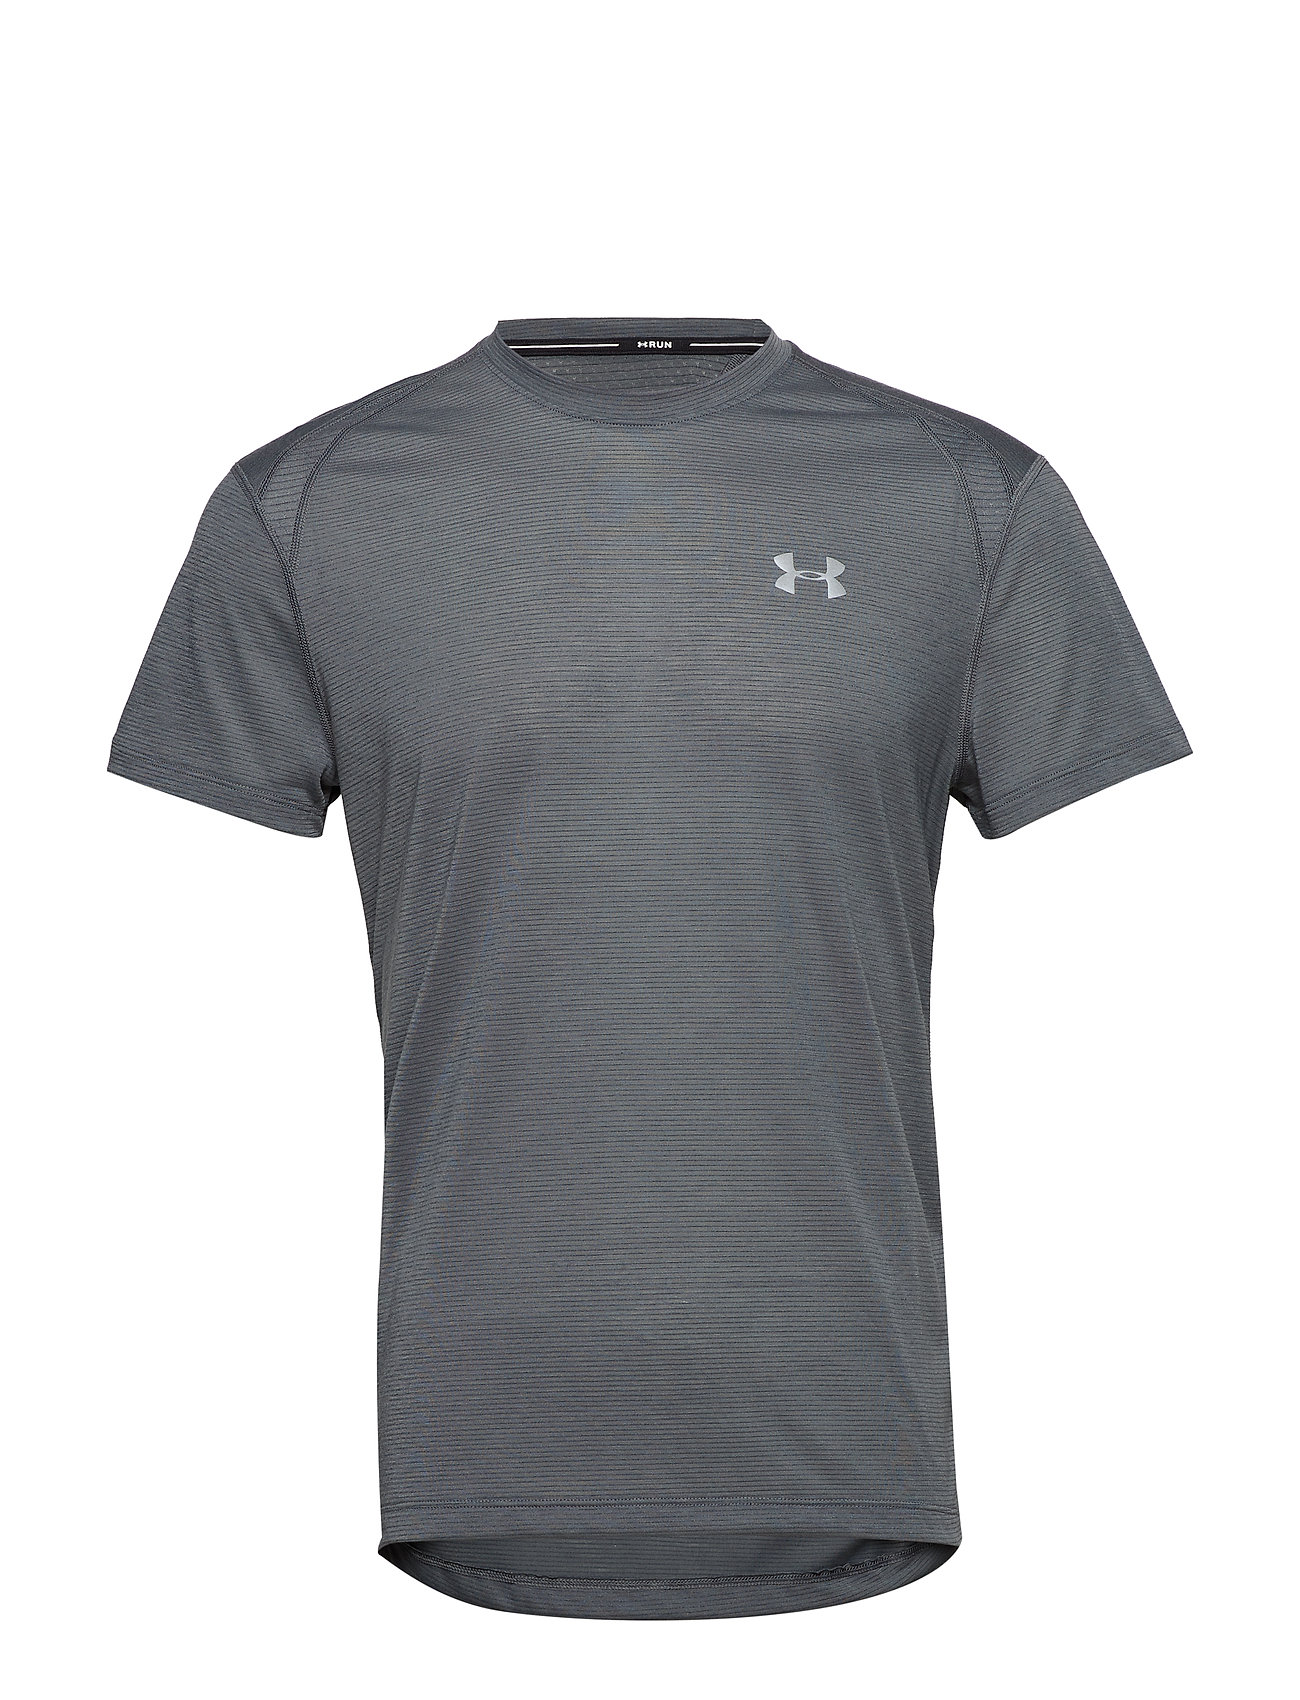 Under Armour UA STREAKER 2.0 SHORTSLEEVE - GRAY